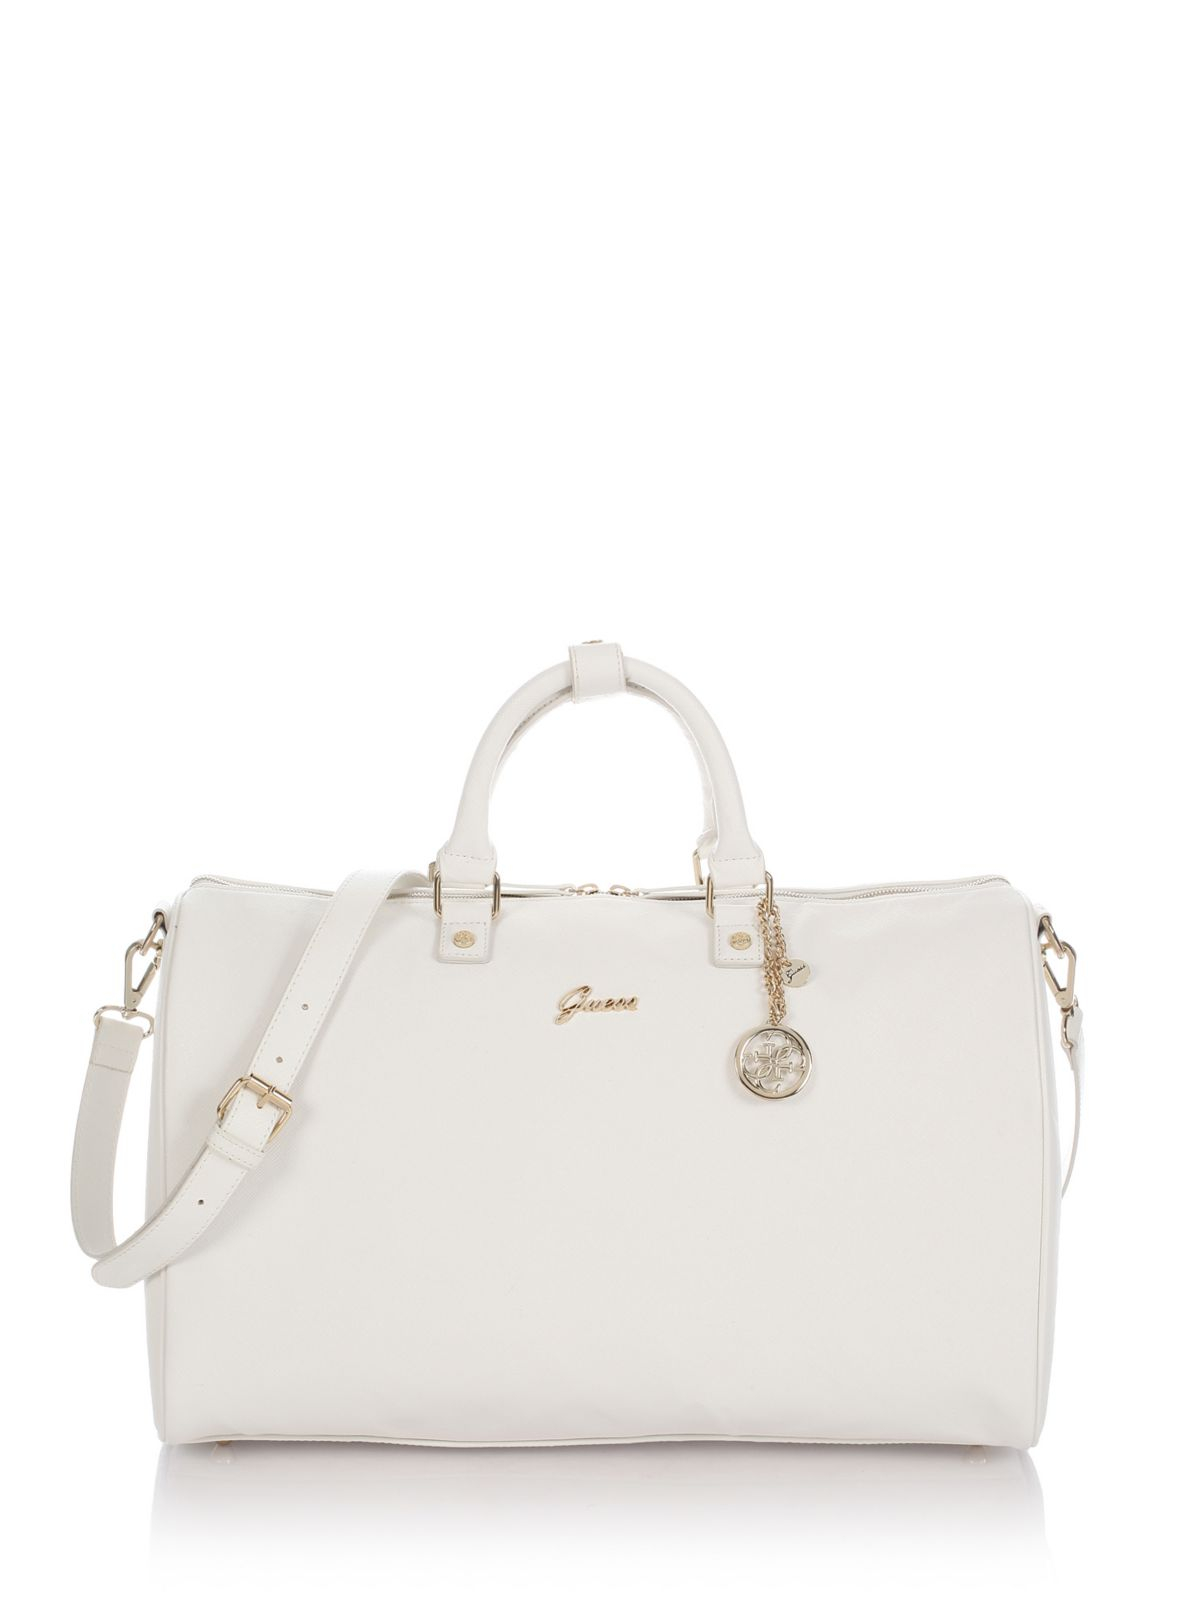 Guess Midtown Travel Bag in White | Lyst